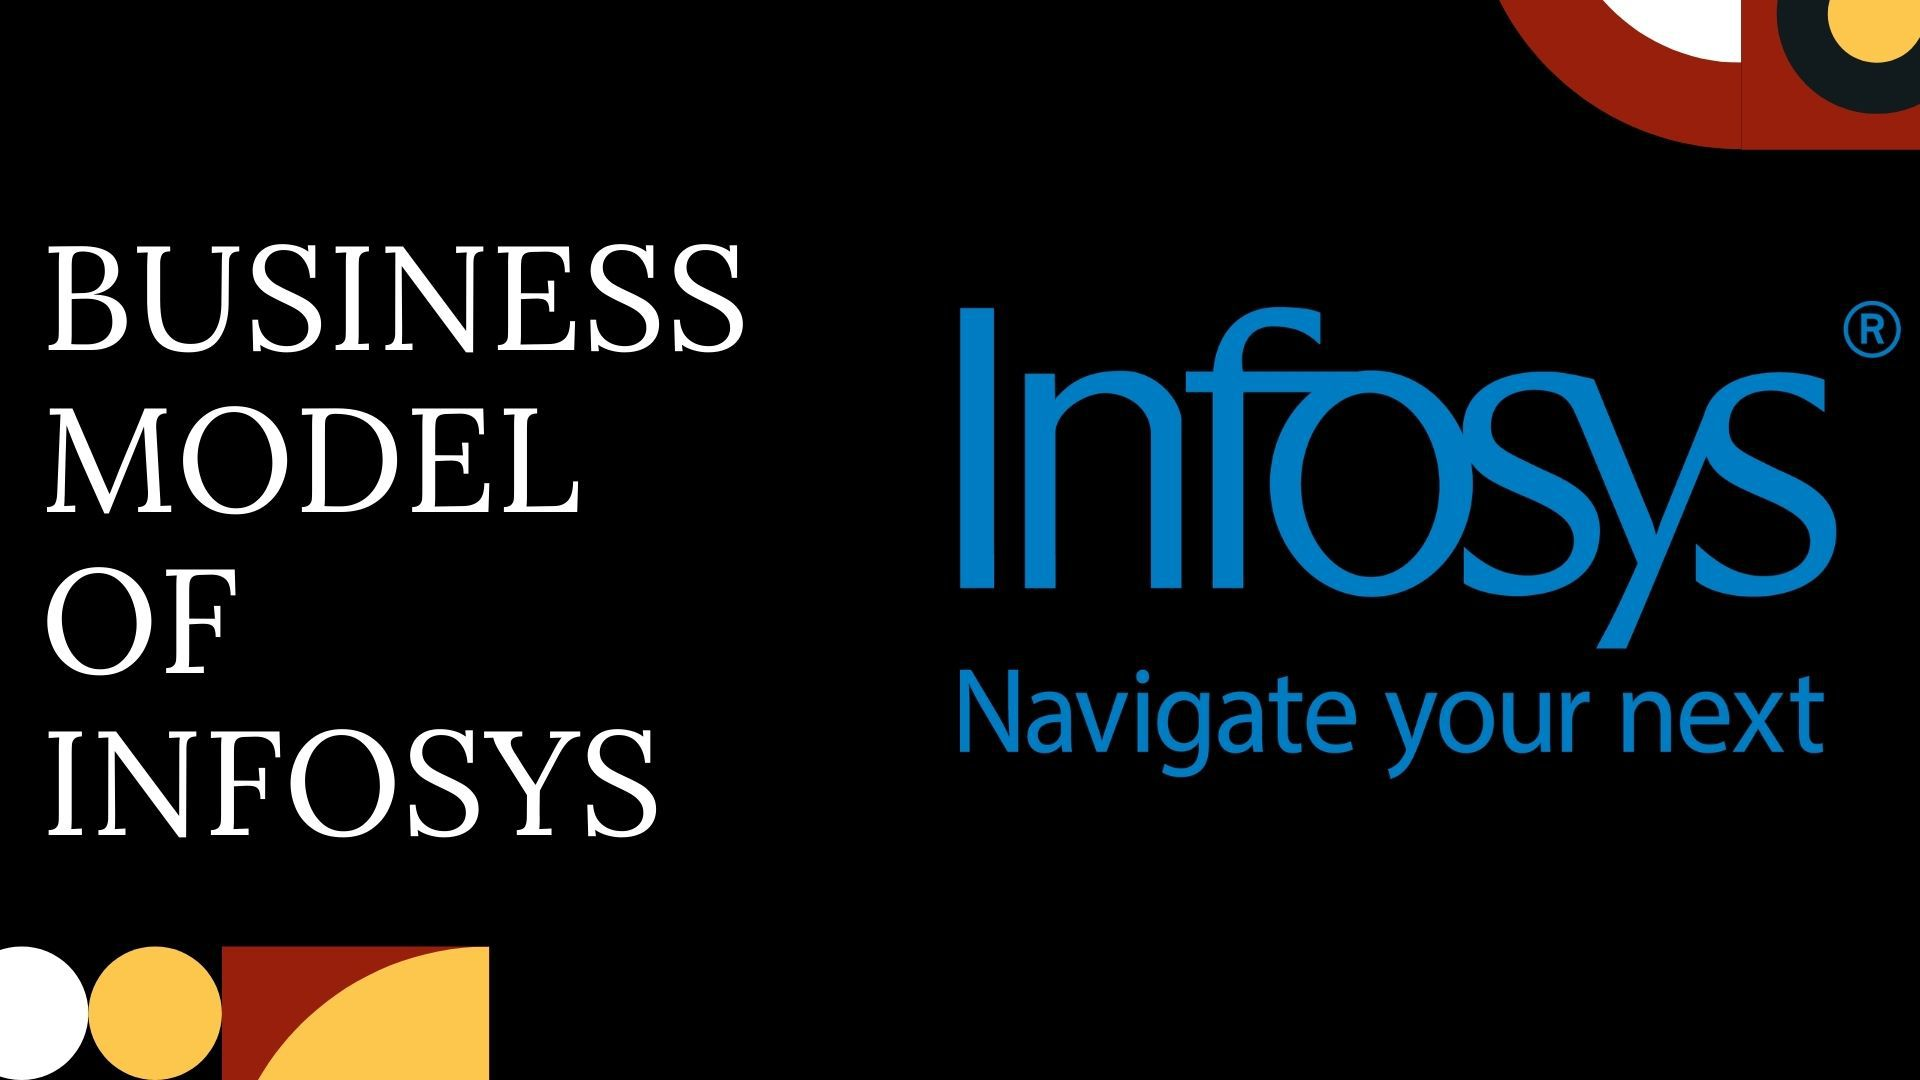 Business Model of Infosys